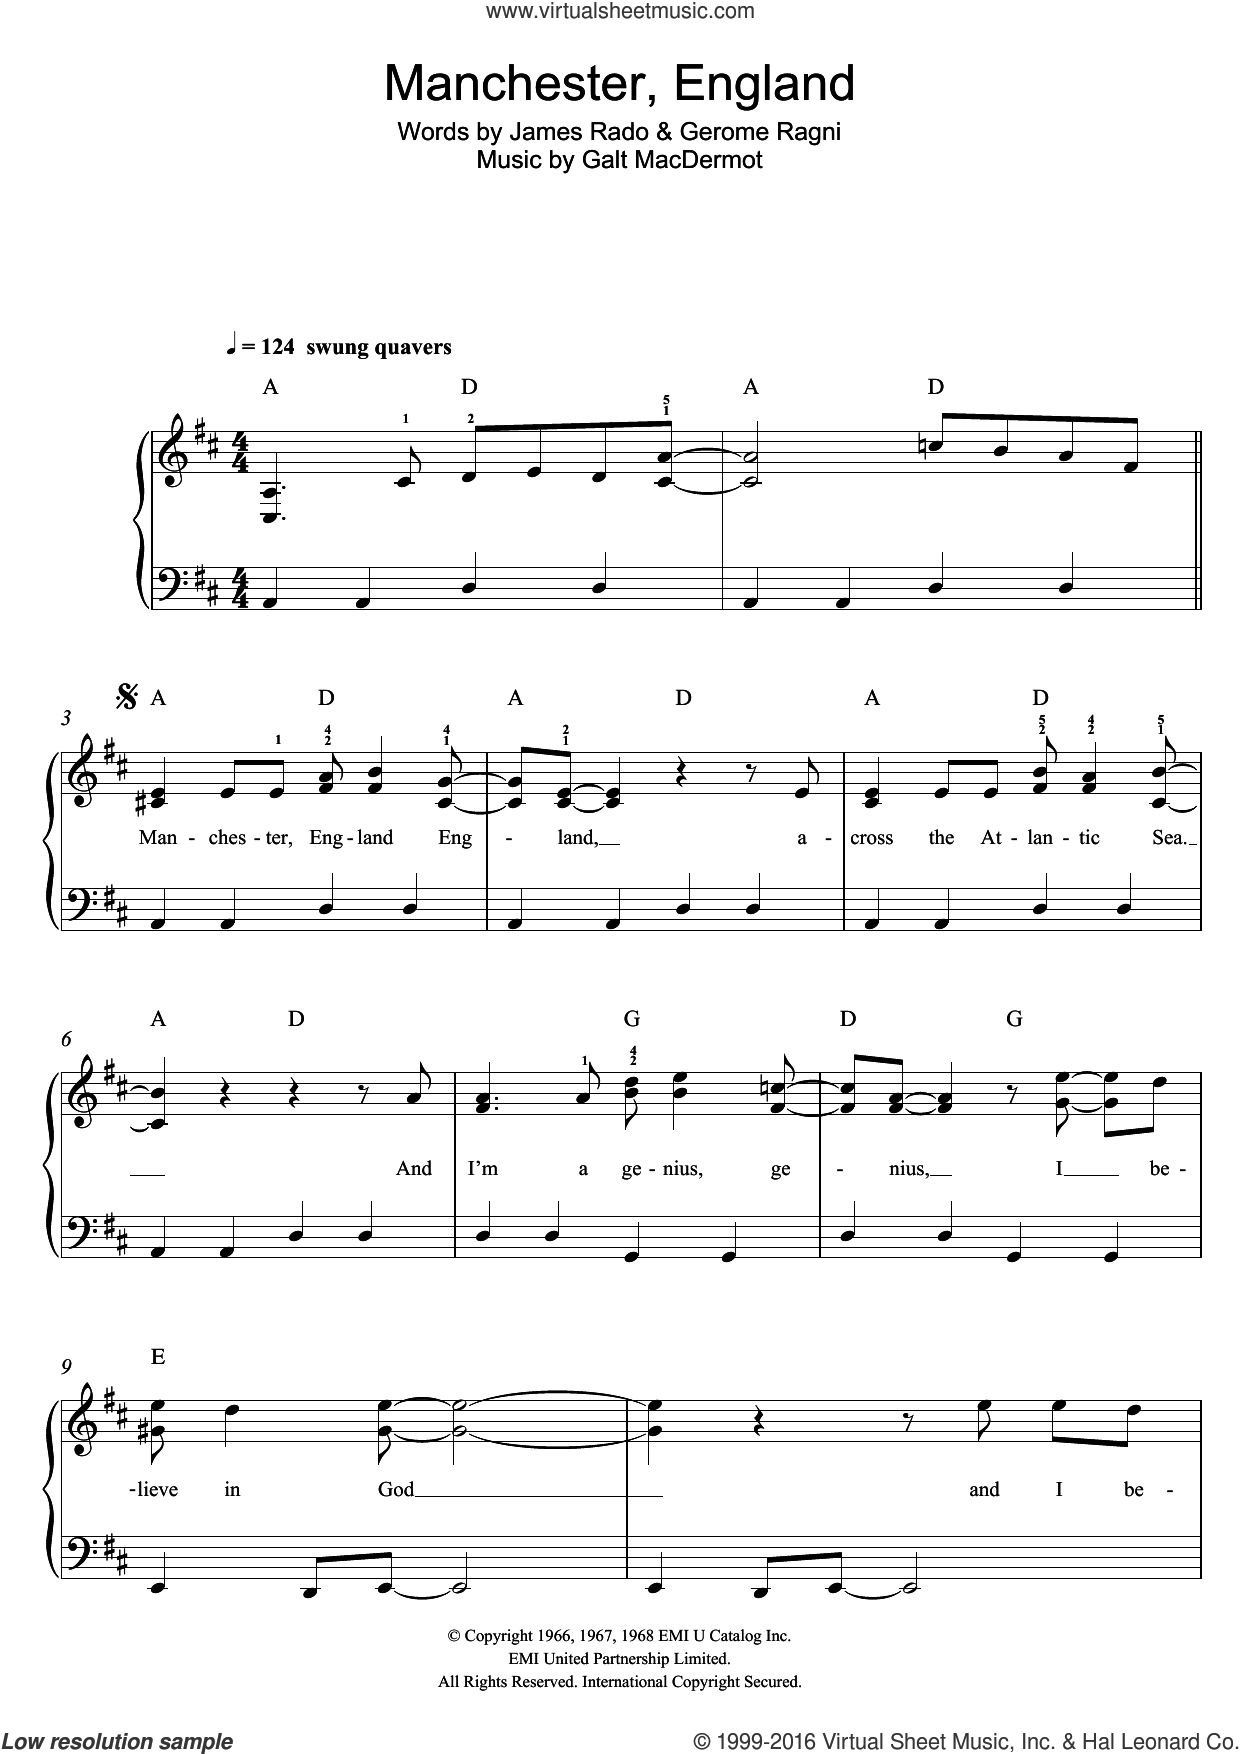 Manchester, England sheet music for piano solo by Galt MacDermot, Gerome Ragni and James Rado, easy skill level